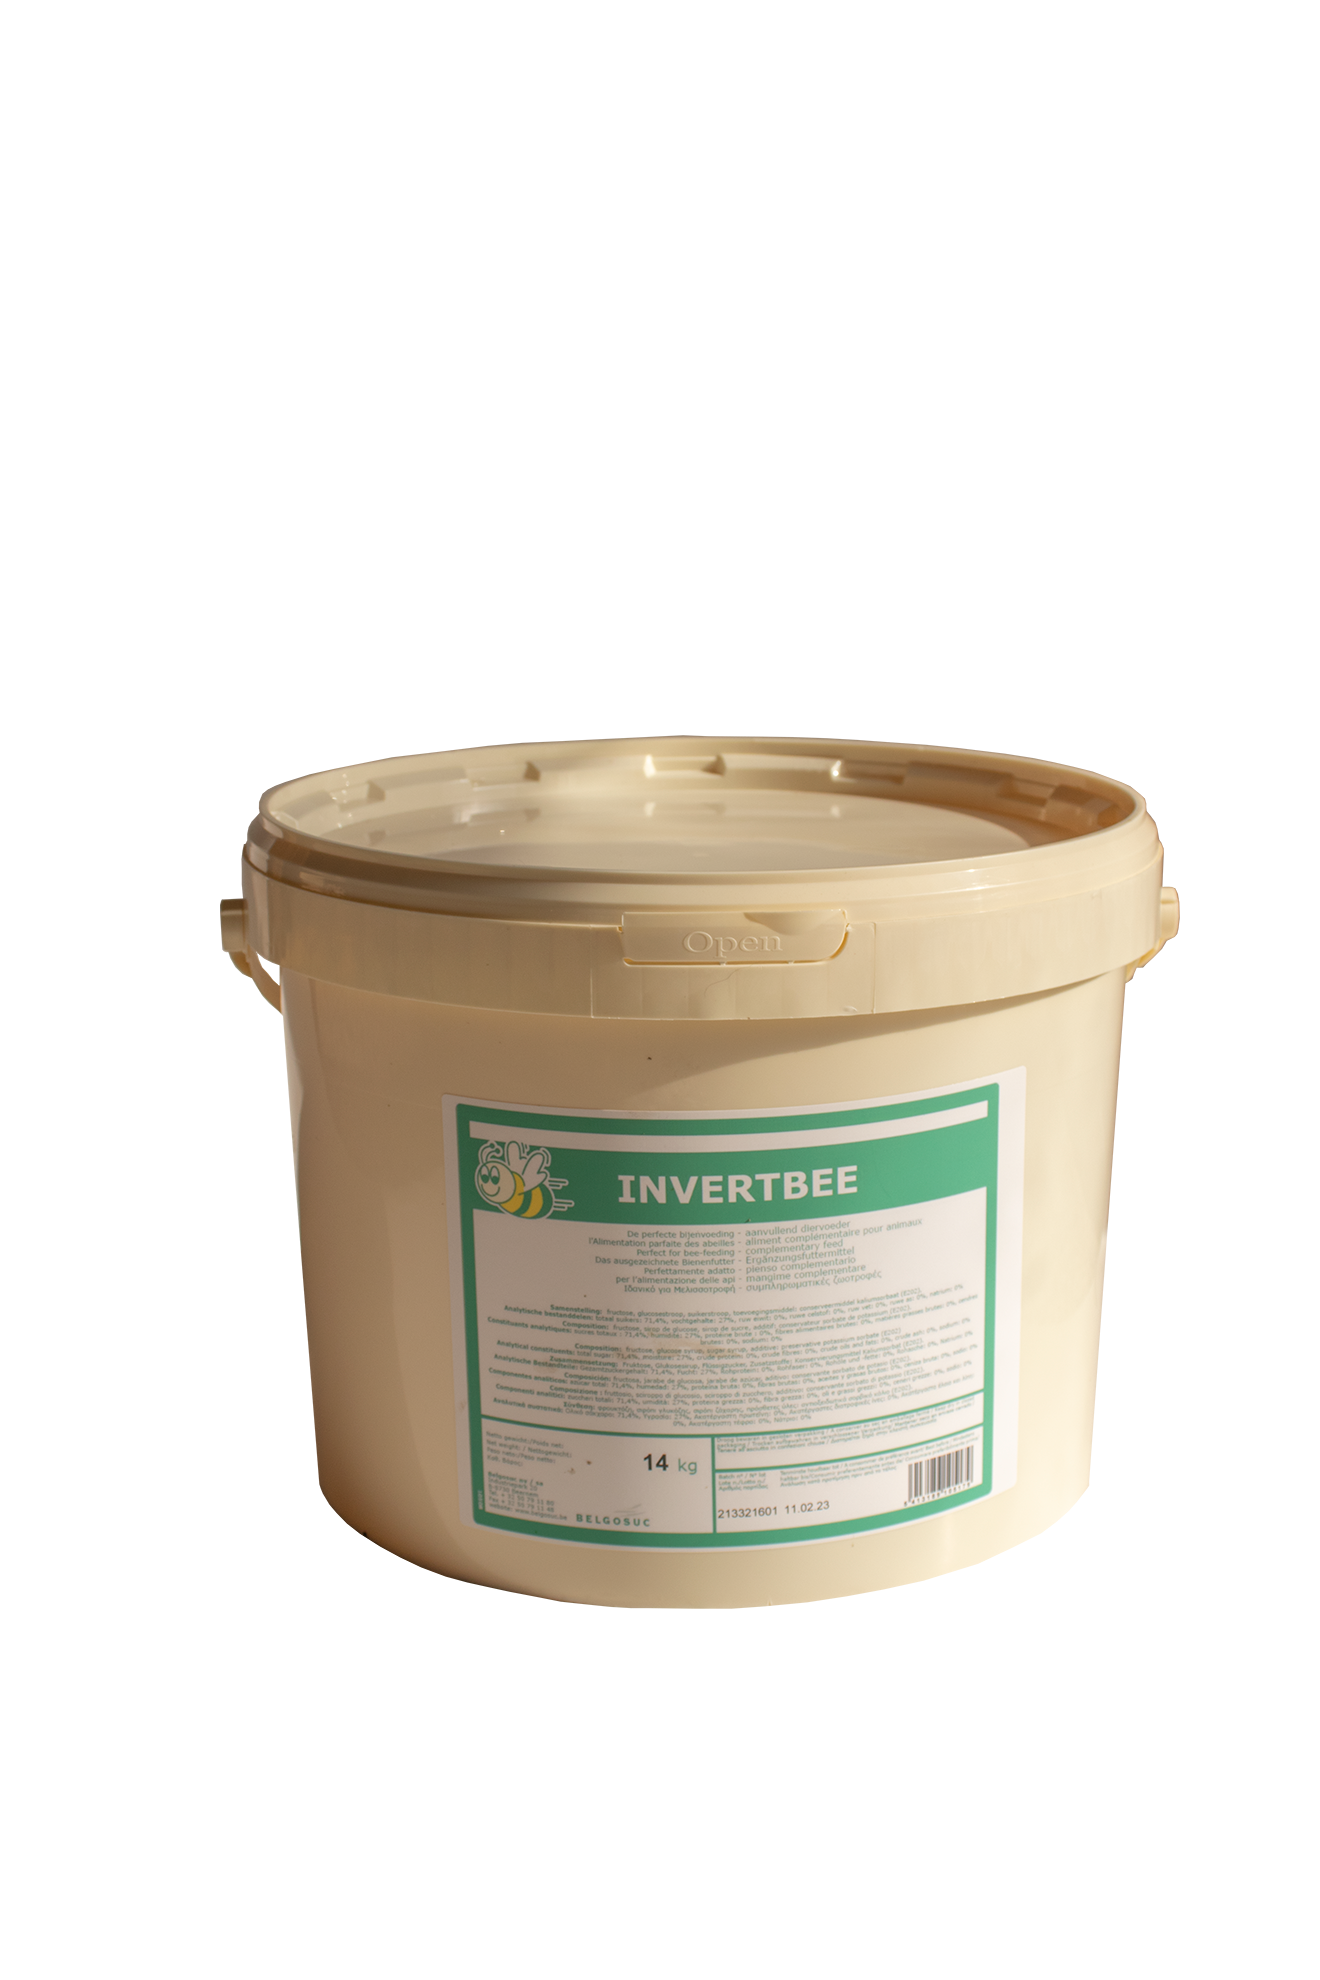 Invertbee in emmer - 14 kg-1